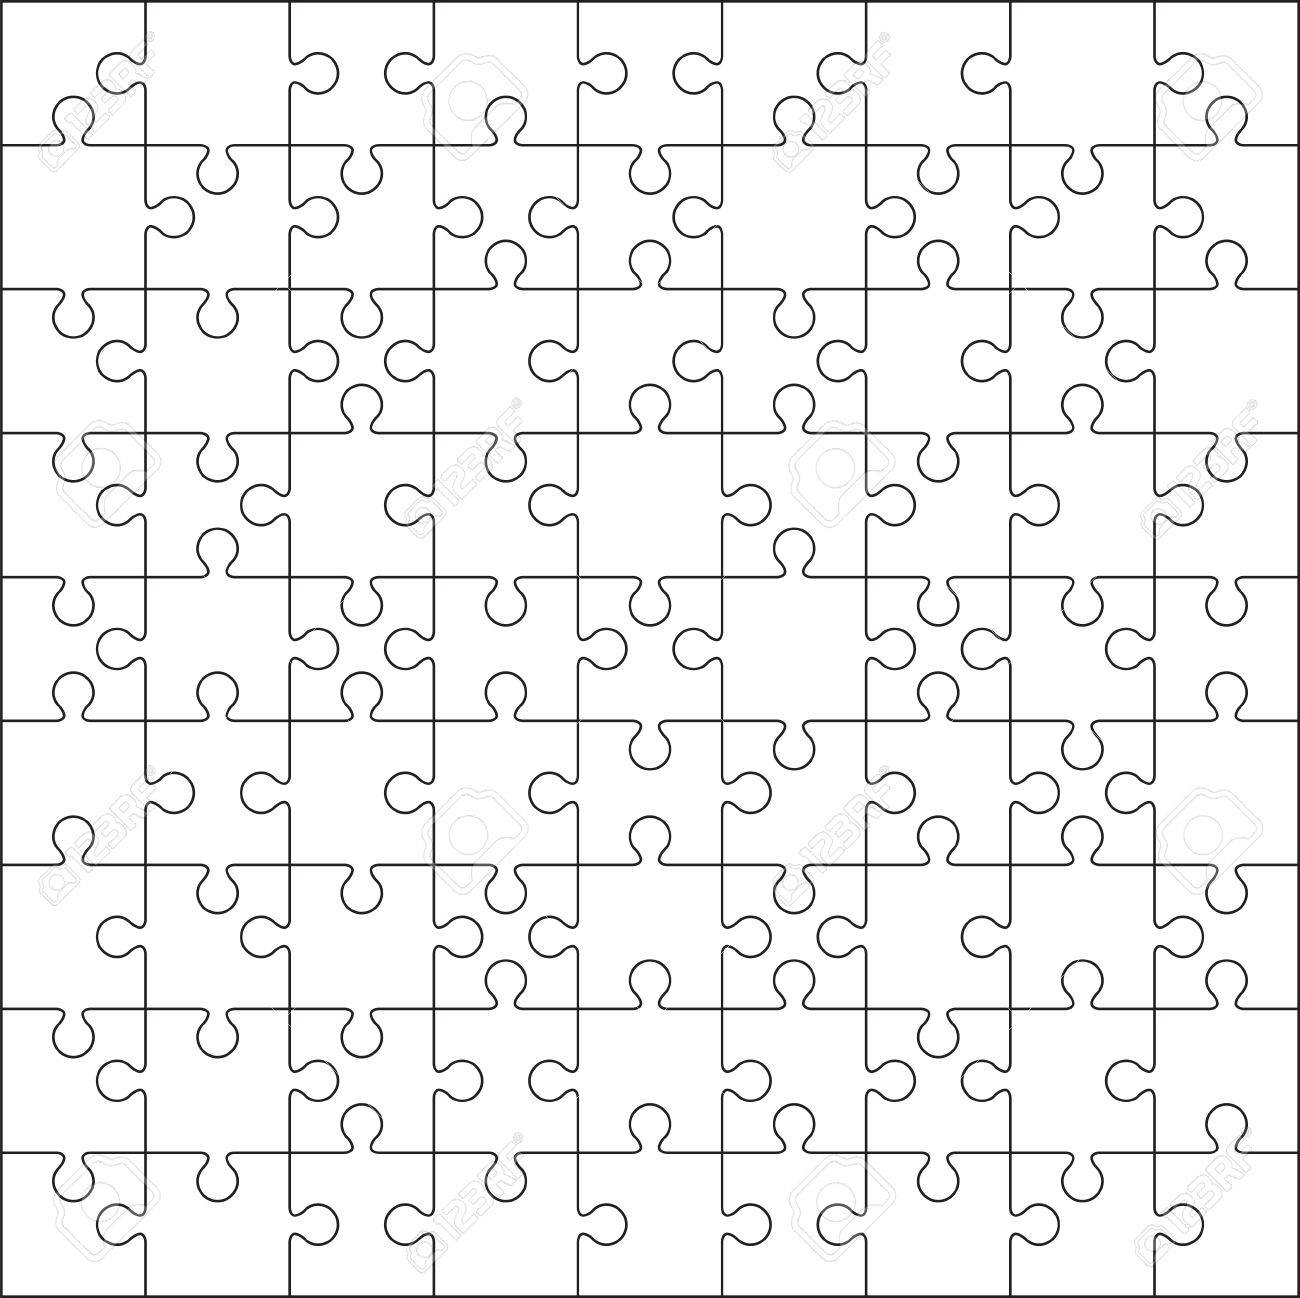 100 Jigsaw Puzzle Blank Template Or Cutting Guidelines Royalty Free ...